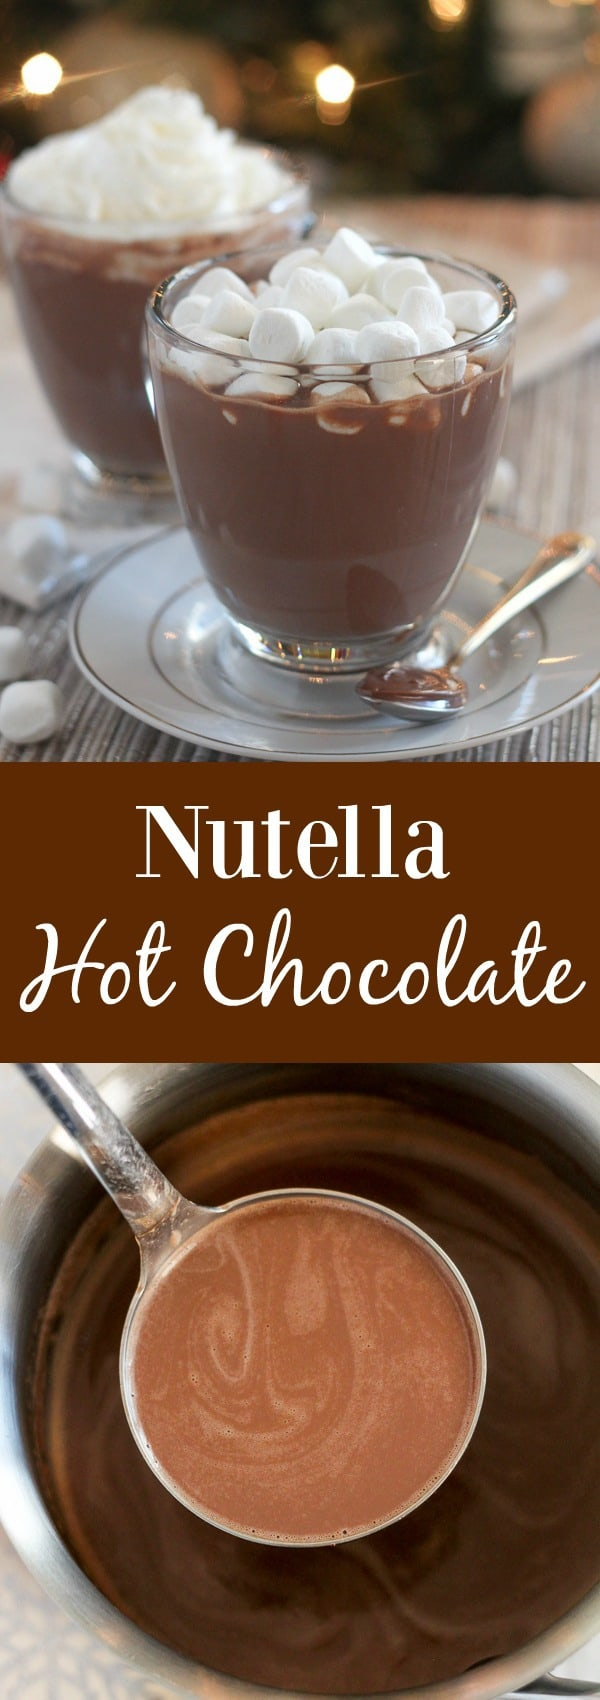 Nutella-Hot-Chocolate.jpg?resize=600,1700&ssl=1